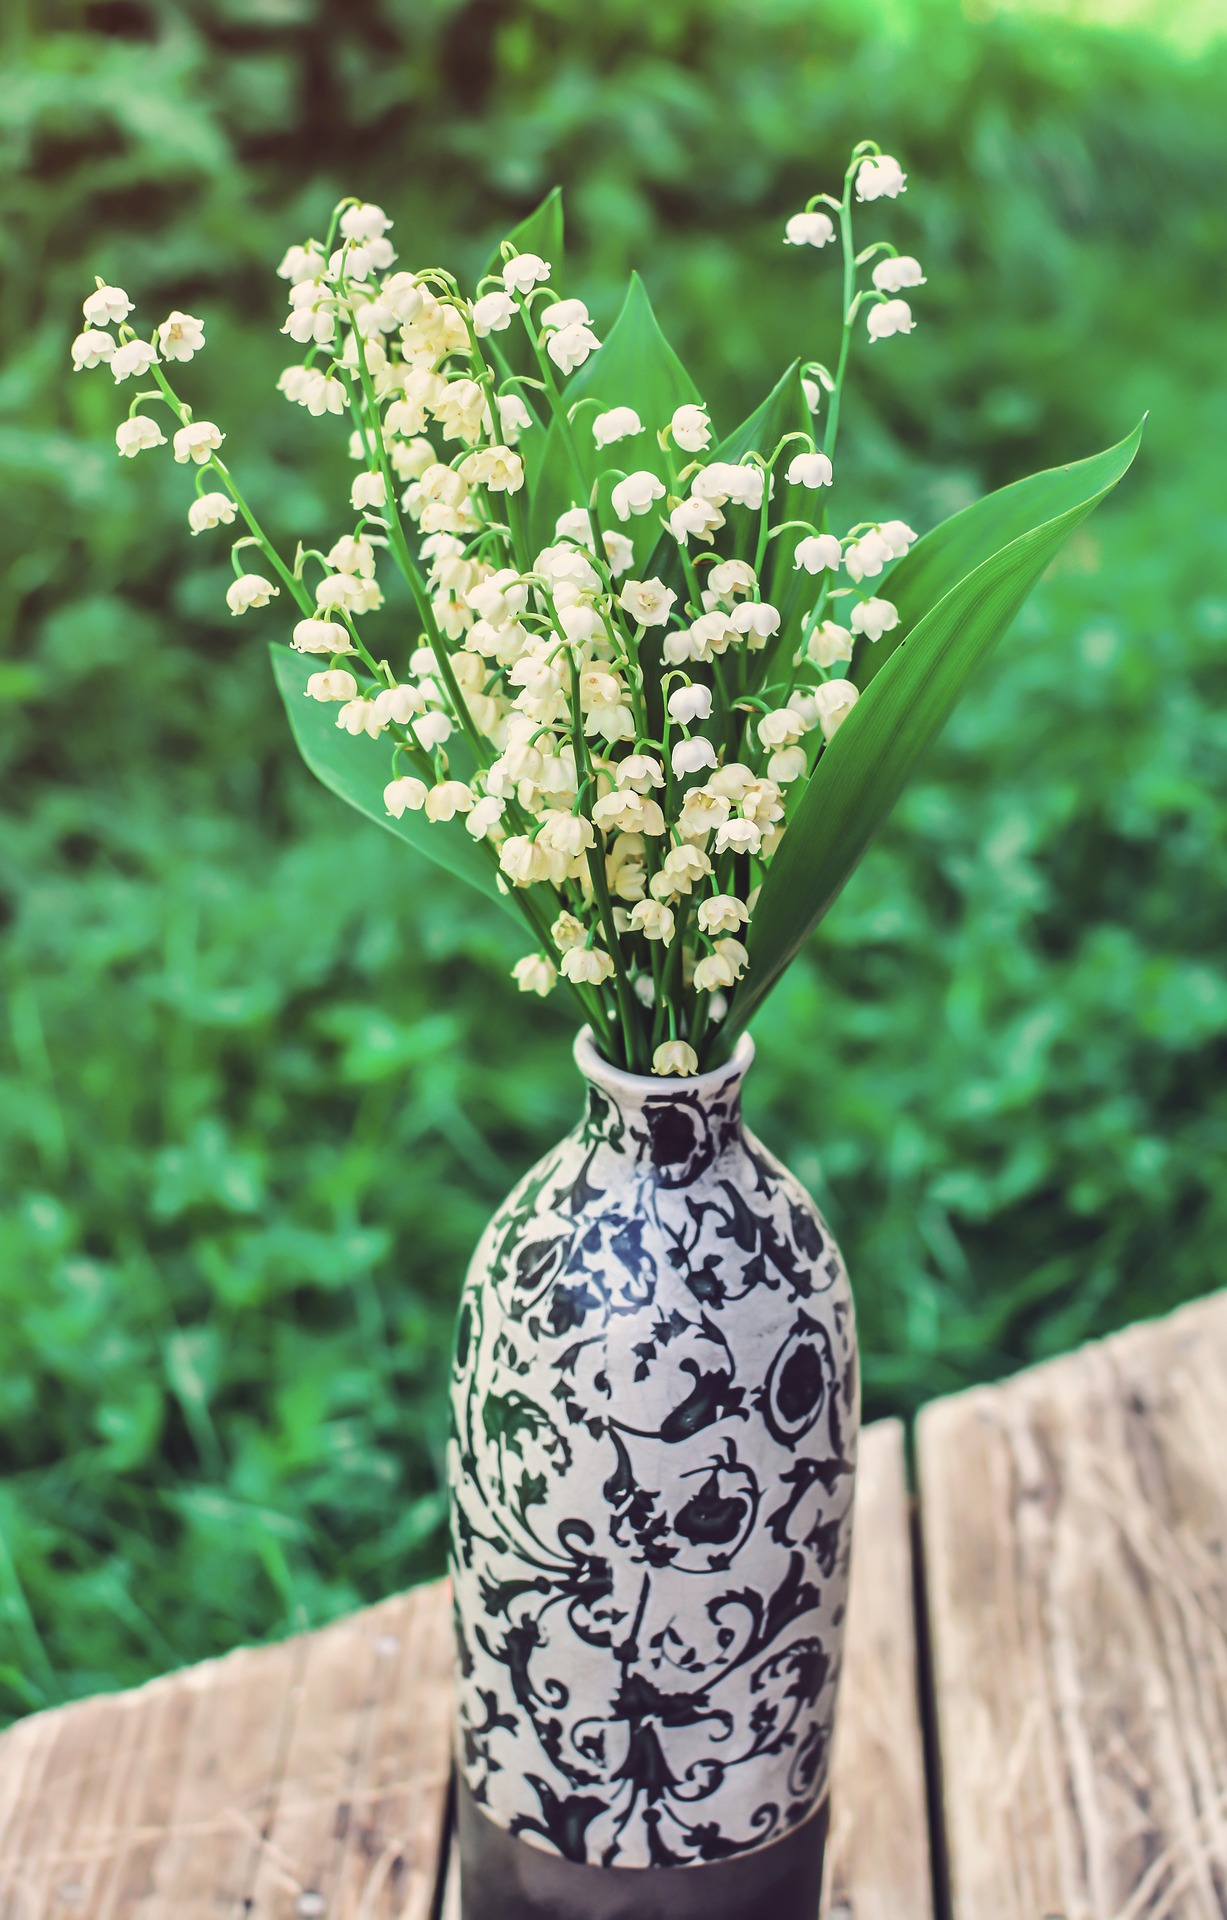 A small decorated vase with a narrow opening so it doesn't require a lot of flowers. The flowers shown are Lilies of the field, but baby's breath, or mini carnations, or any inexpensive flower in a small vase, or a narrow opening vase would be wonderful